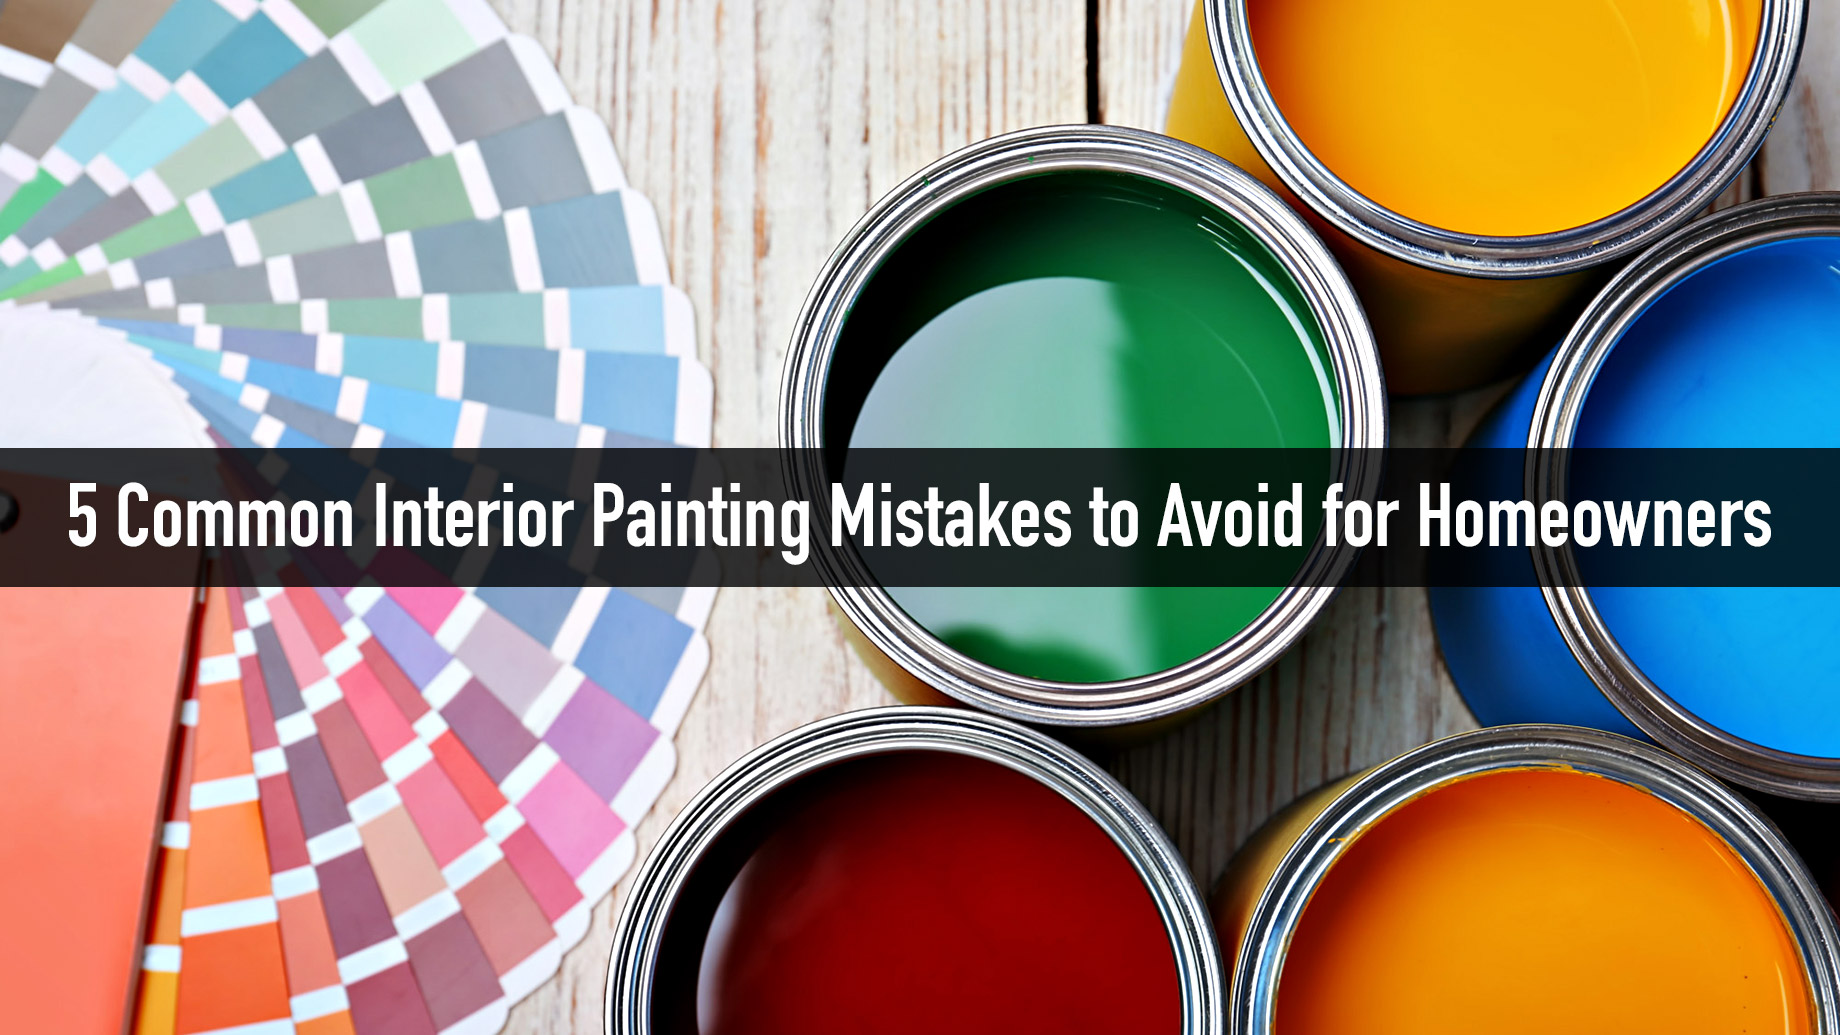 5 Common Interior Painting Mistakes to Avoid for Homeowners